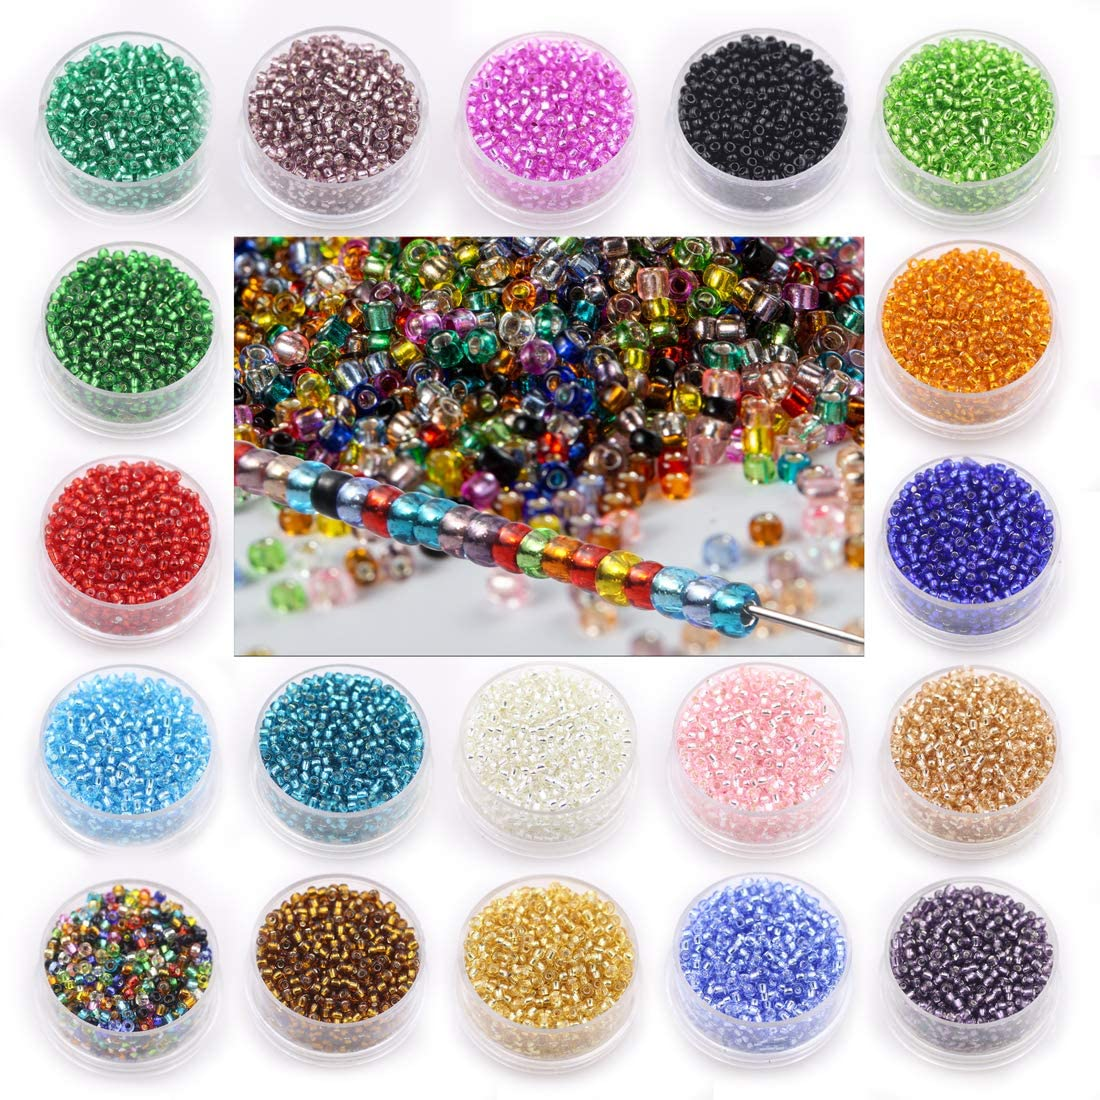 12/0 Glass Seed Beads for Jewelry Making, About 19000pcs Silver Lined Glass Beads19 Multicolored 2mm Spacer Beads Clear with Container Box